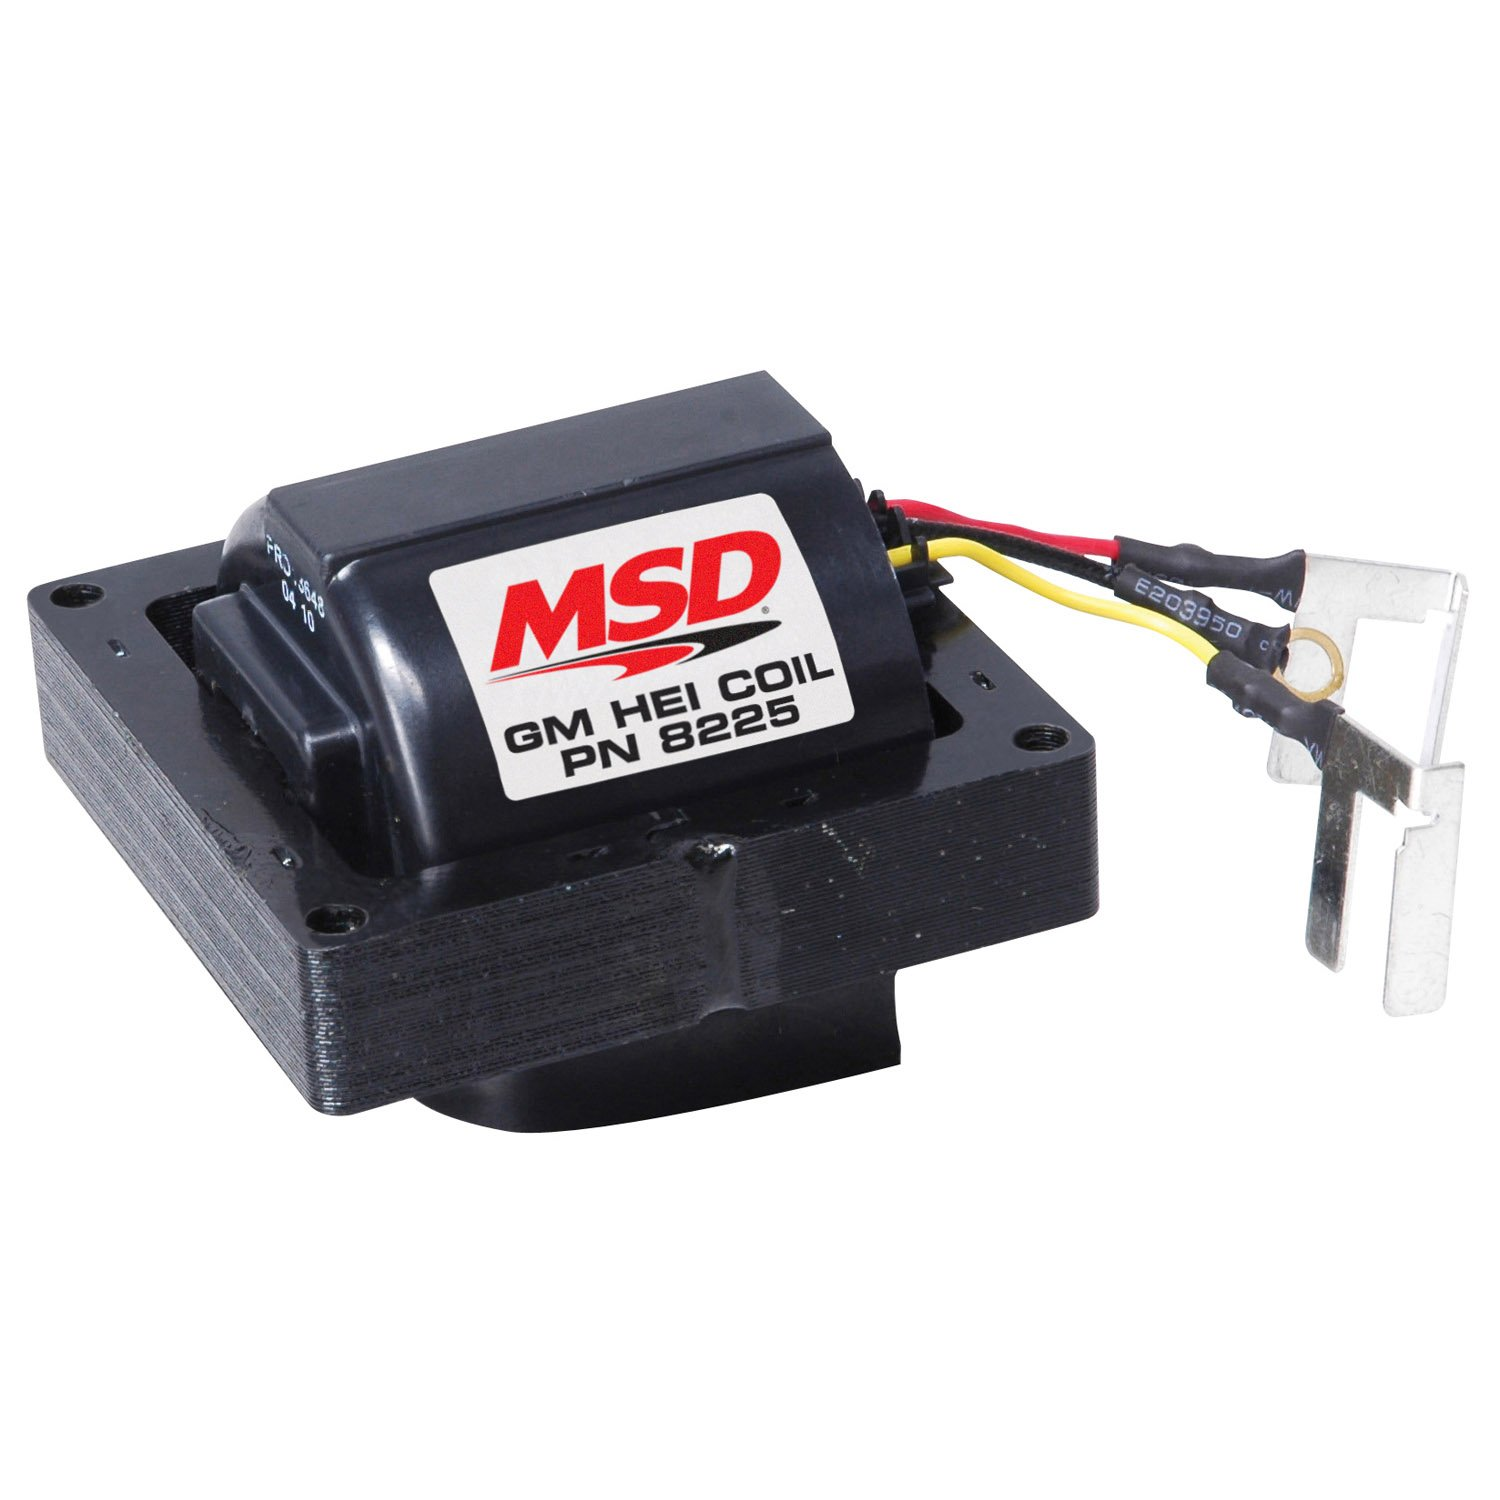 8225 as well Watch also High Torque Starter Wiring Diagram together with Wiring Diagram For Msd 6al likewise Msd Question 711601. on msd ignition wiring diagram